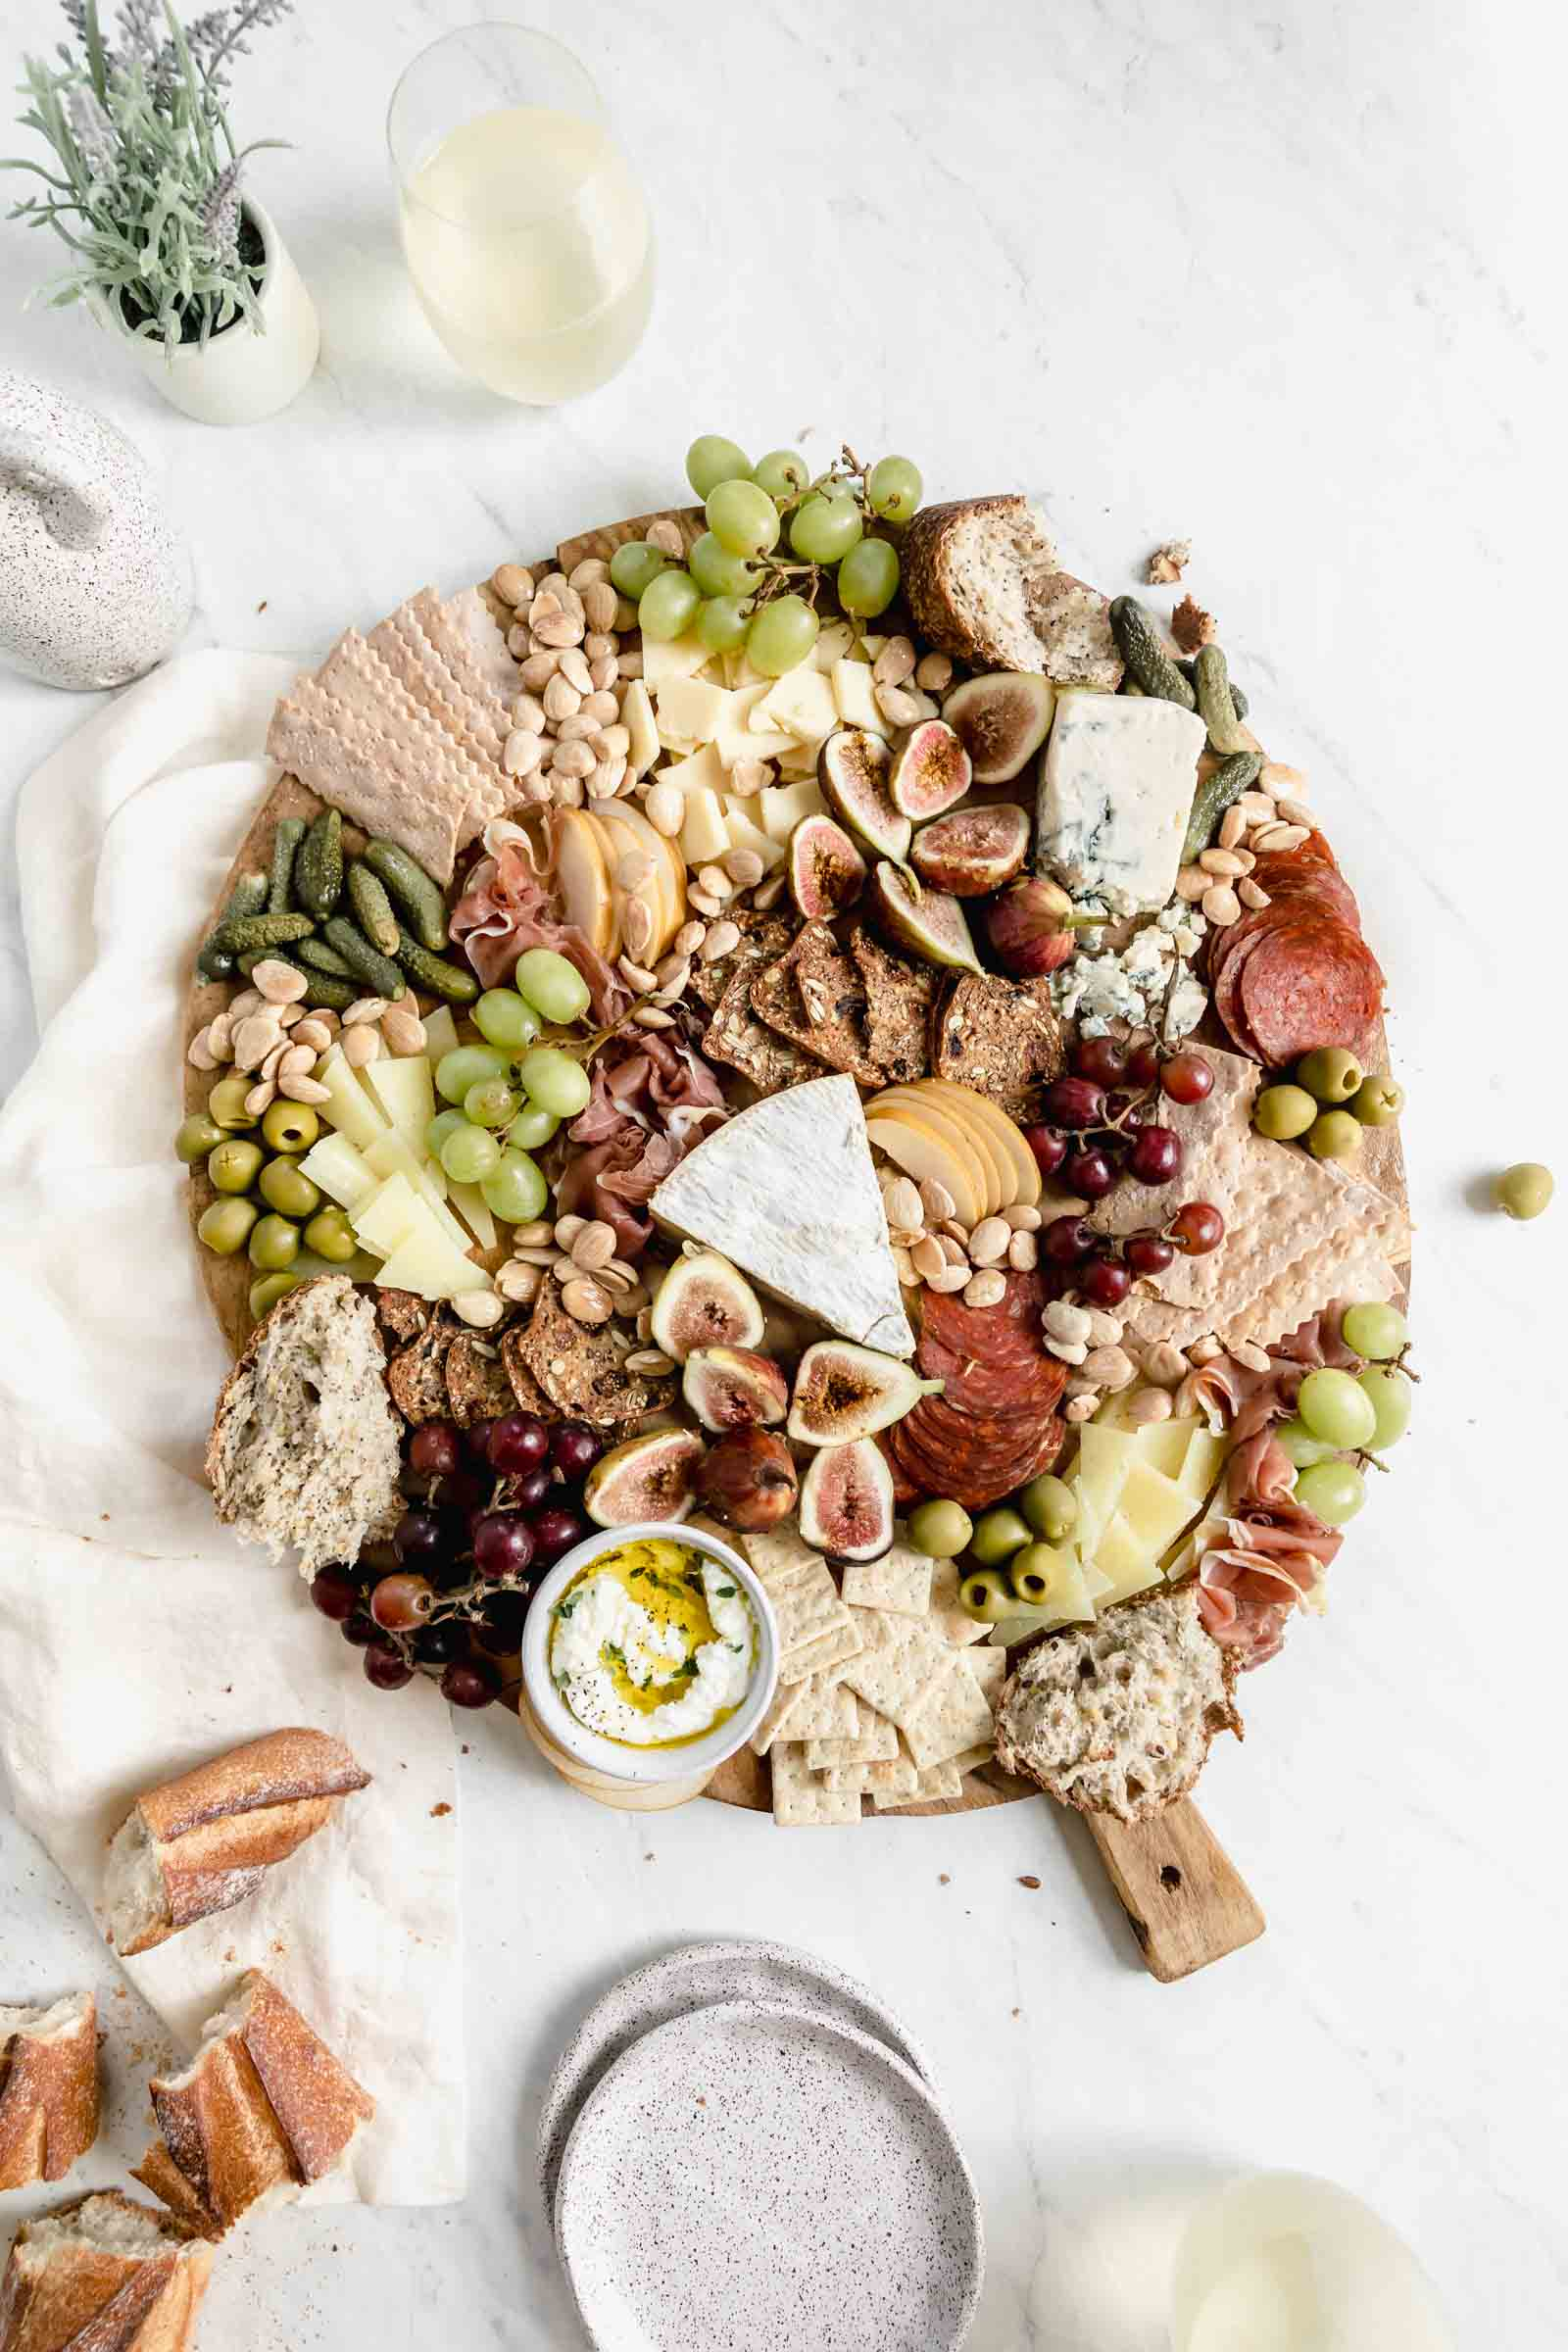 fill in cheese board gaps with marcona almonds to complete cheeseboard